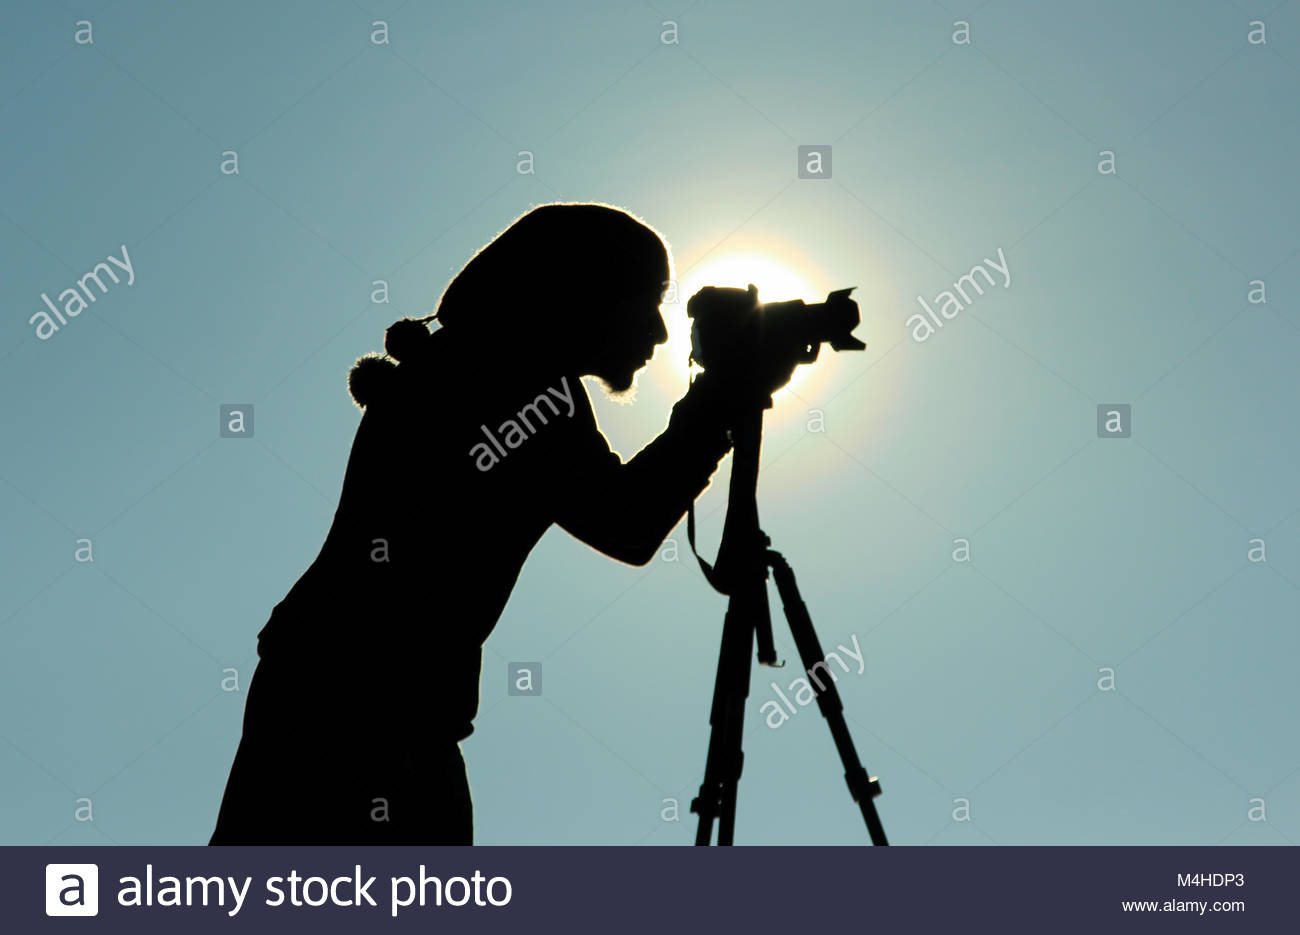 take spontaneous pictures - Stock Image